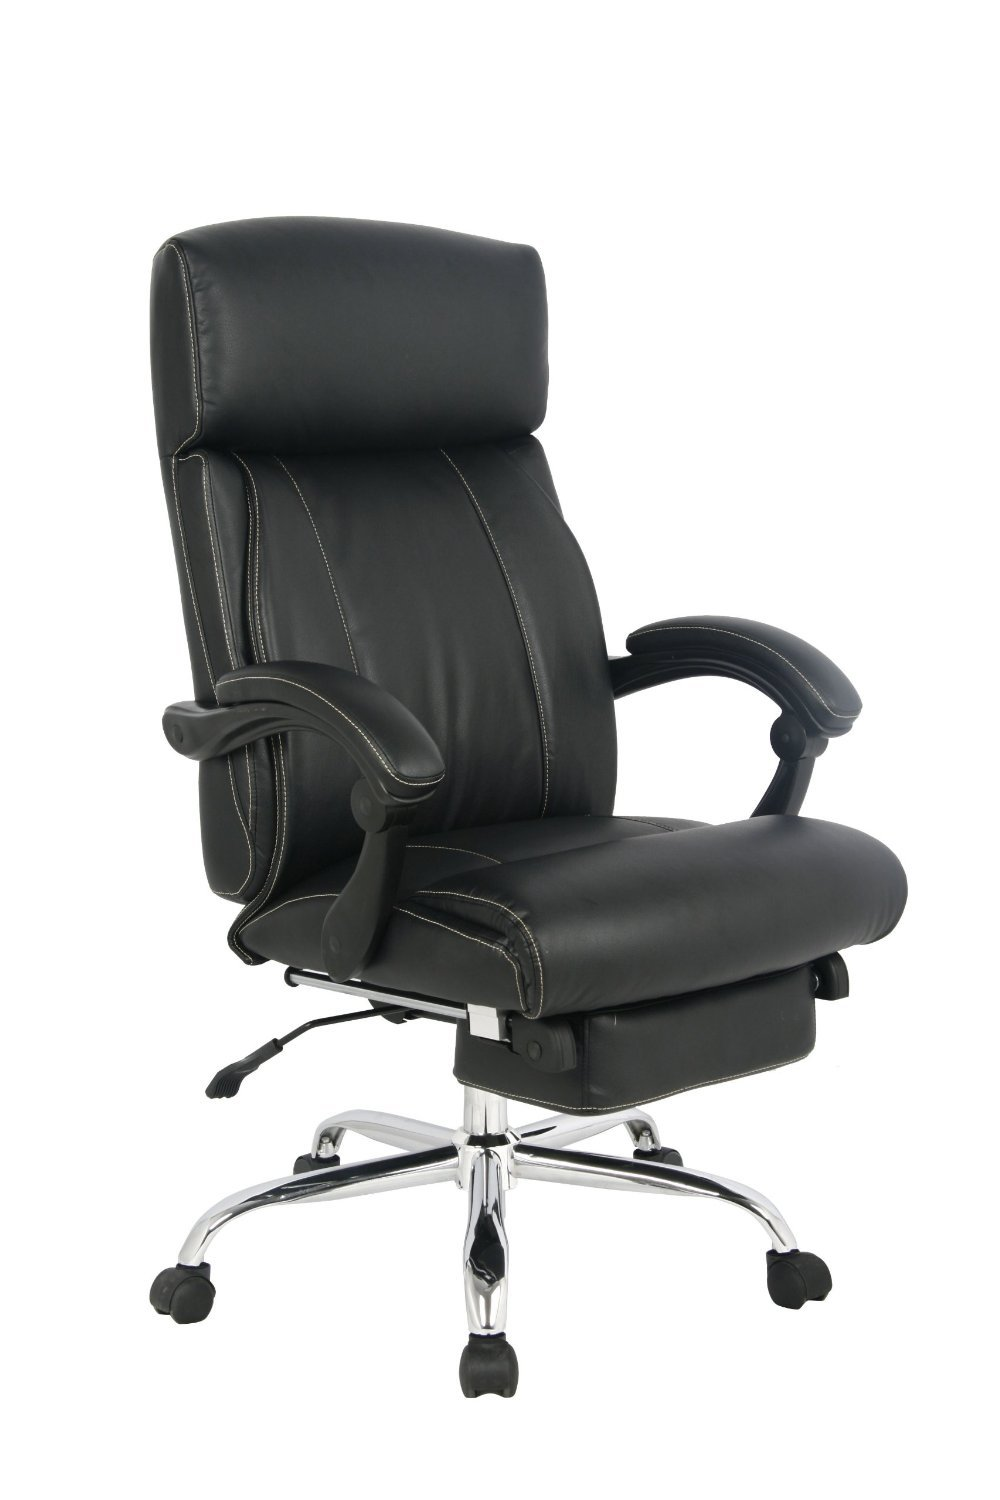 VIVA OFFICE® Latest High back ergonomic bonded leather recliner swivel napping chair, adjustable multifunction office chair Executive and Managerial Chair with padded headrest and armrest – VIVA 08501